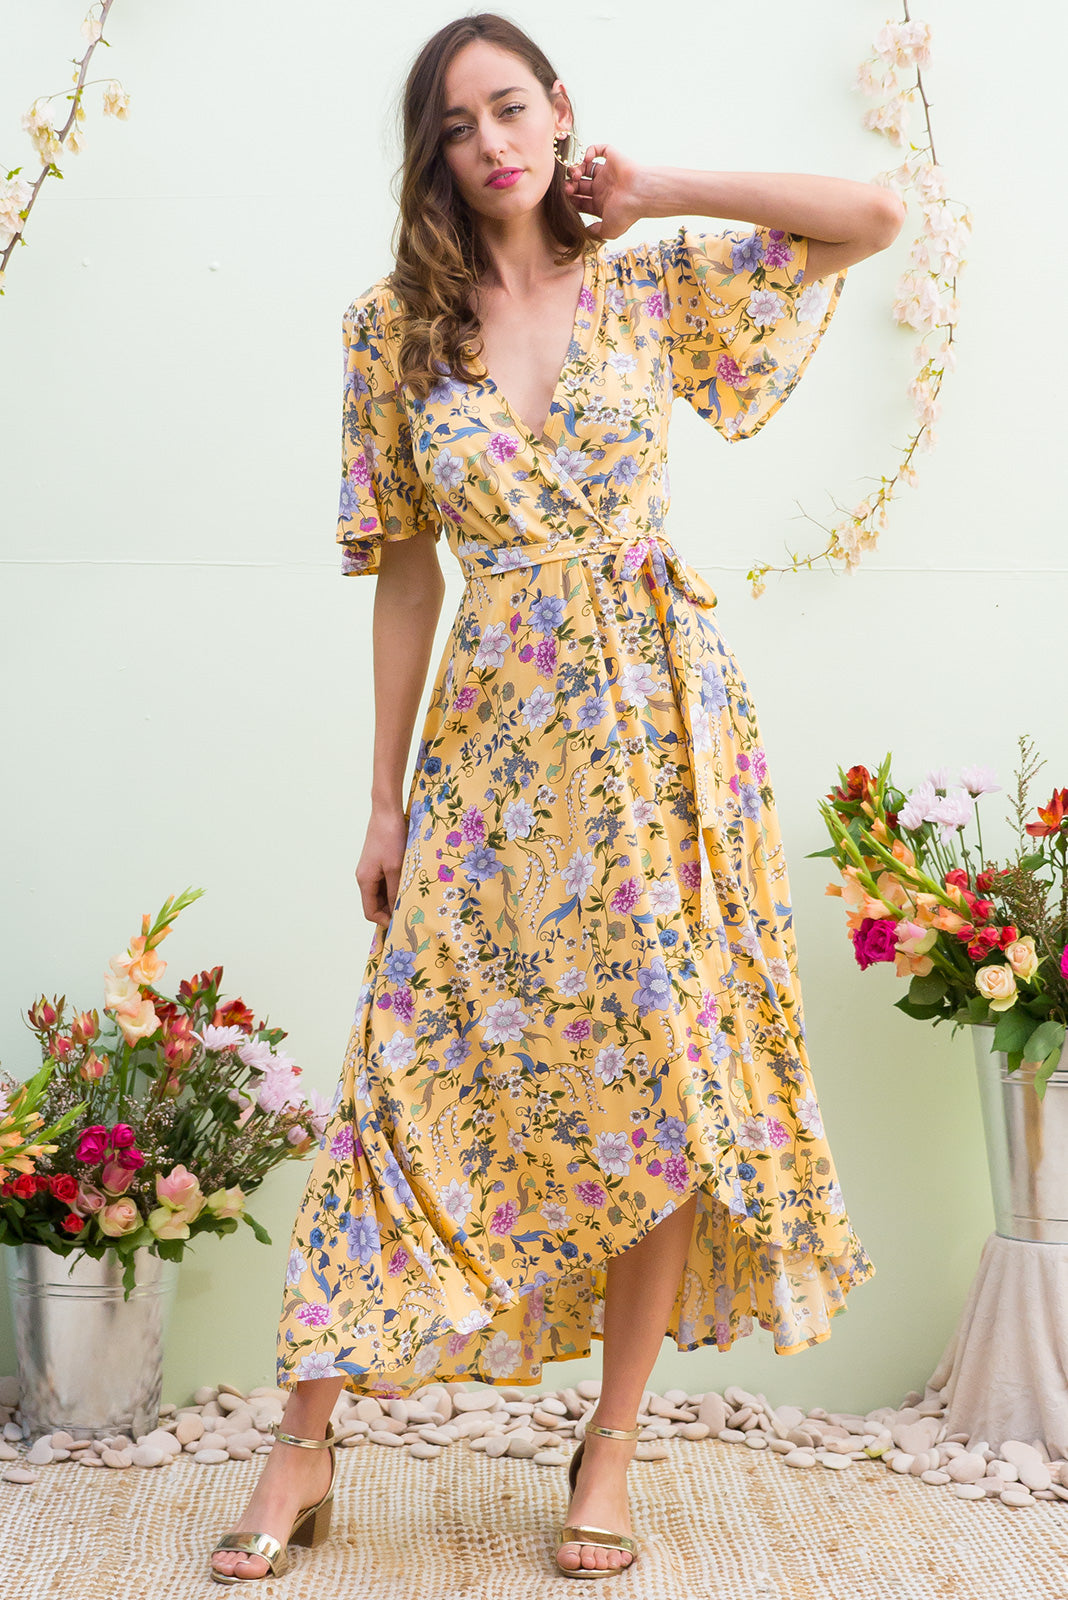 Petal Melody Yellow Maxi Wrap Dress features a soft buttercup yellow base with a delicate floral bohemian print on a soft woven rayon and has a petal sleeve and wrap around shape